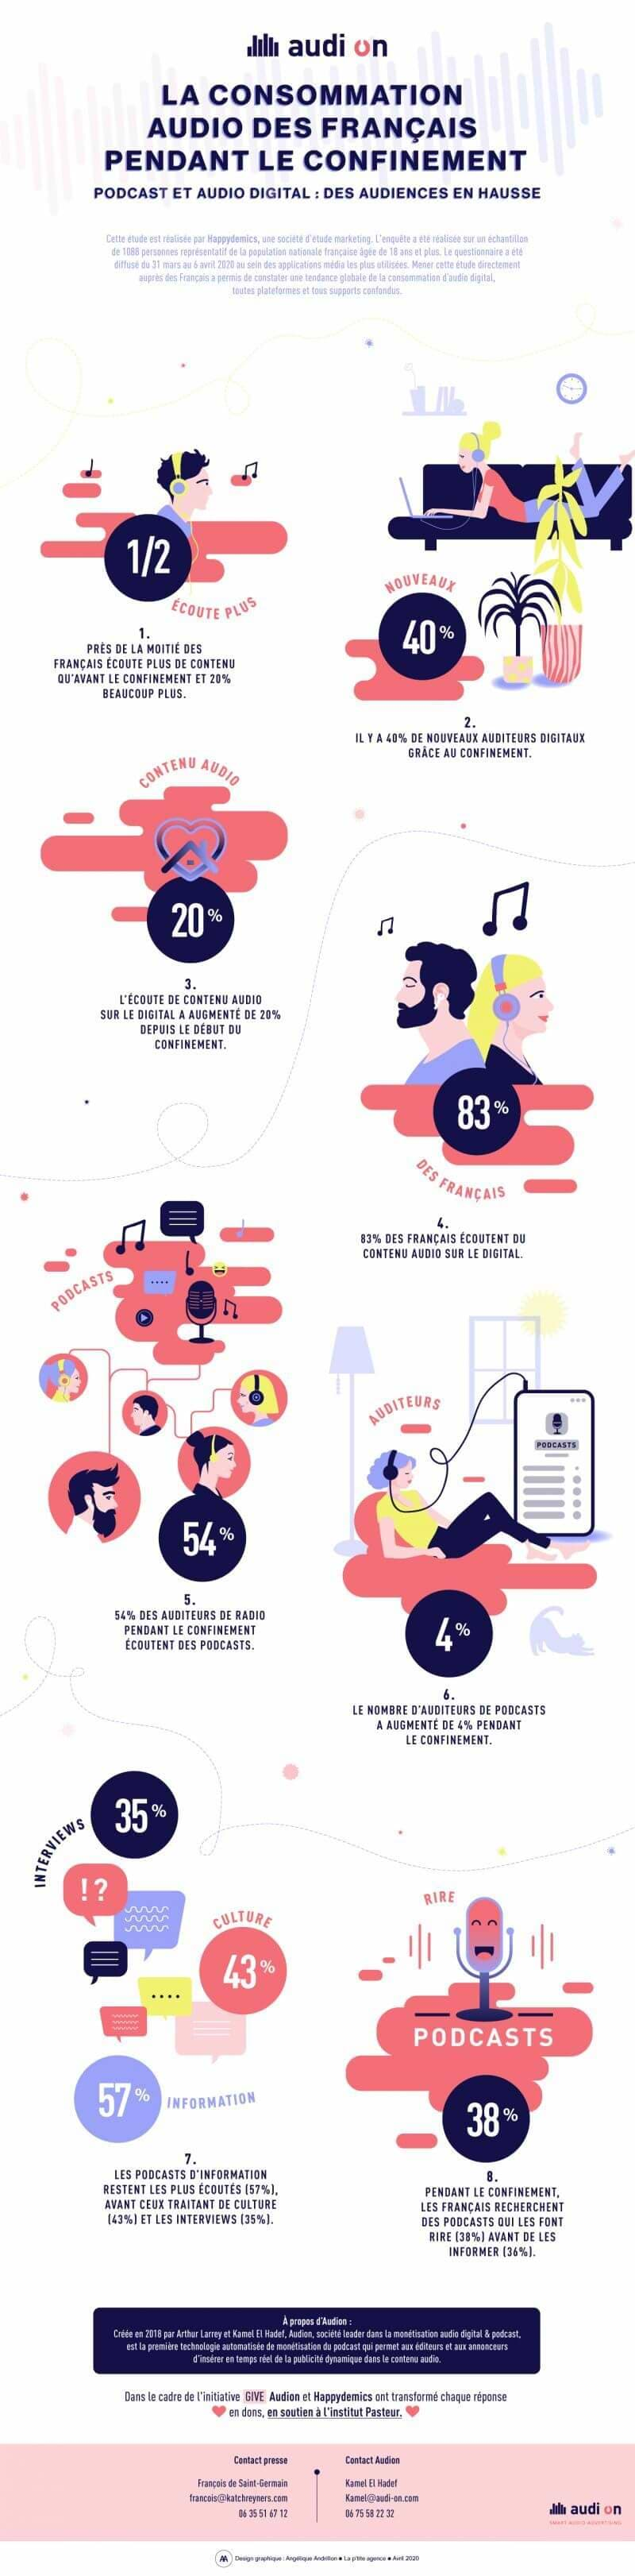 infographie audio france 2020